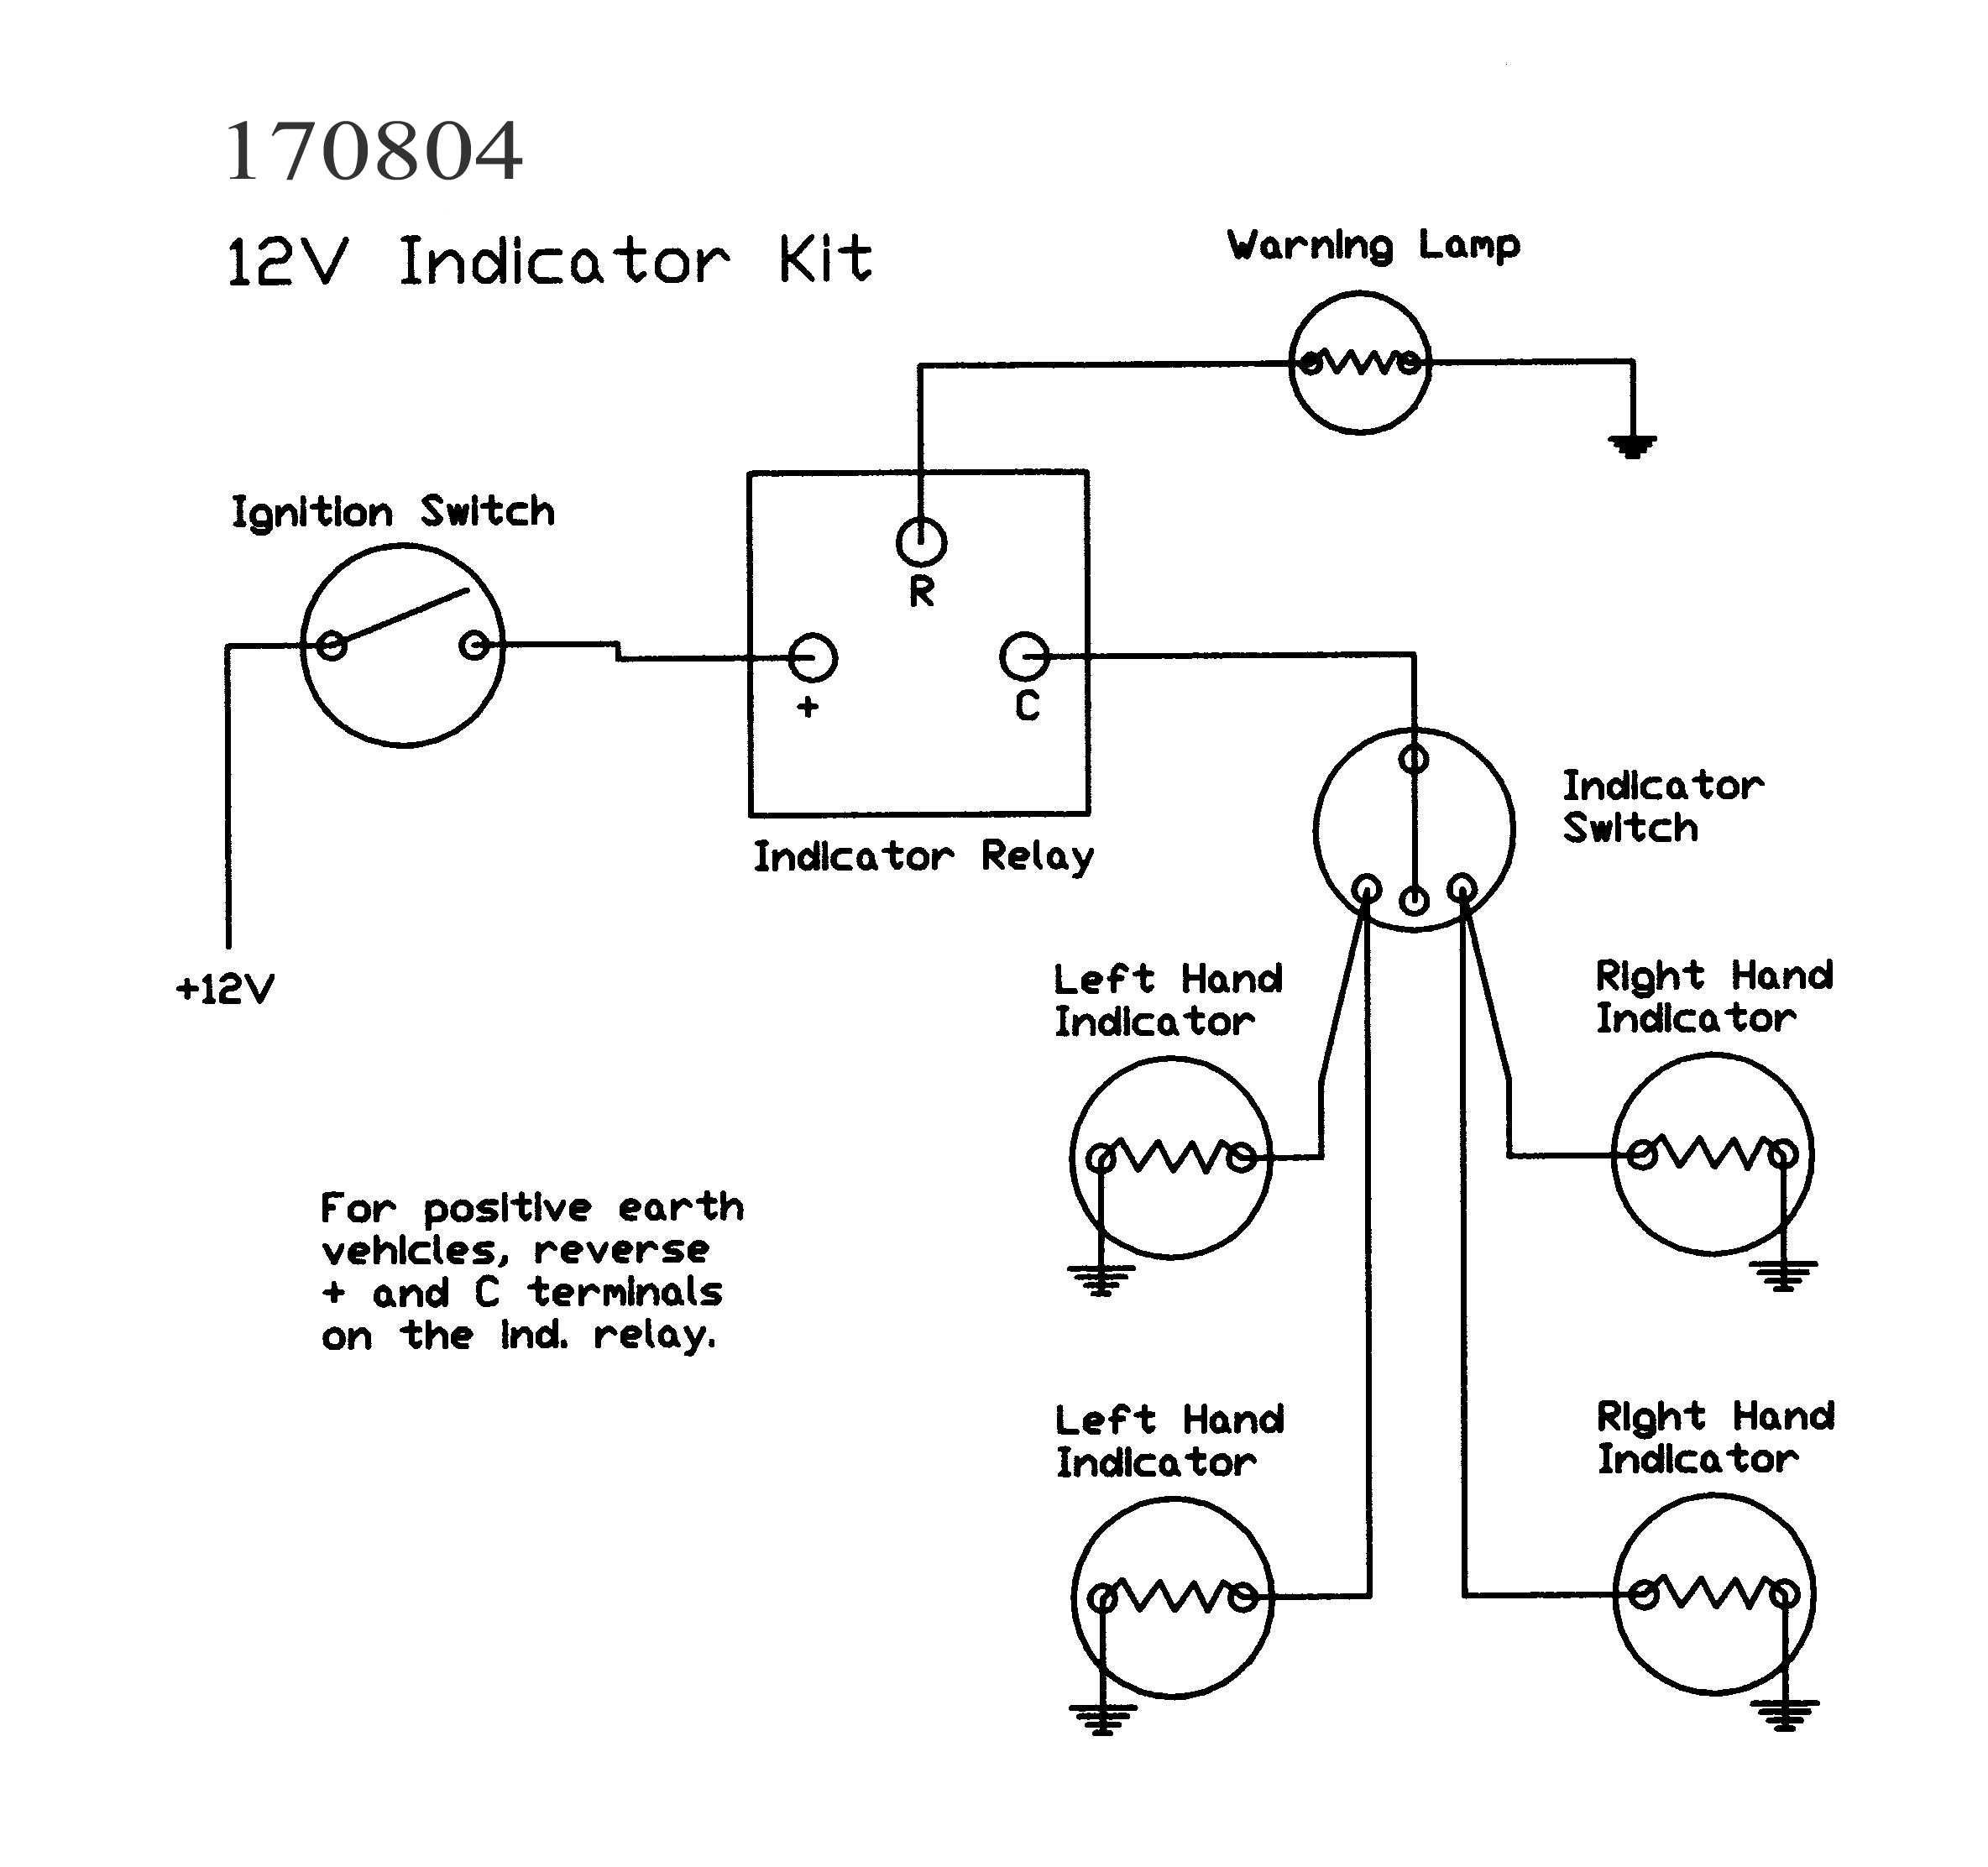 Bmw e36 rear light wiring diagram